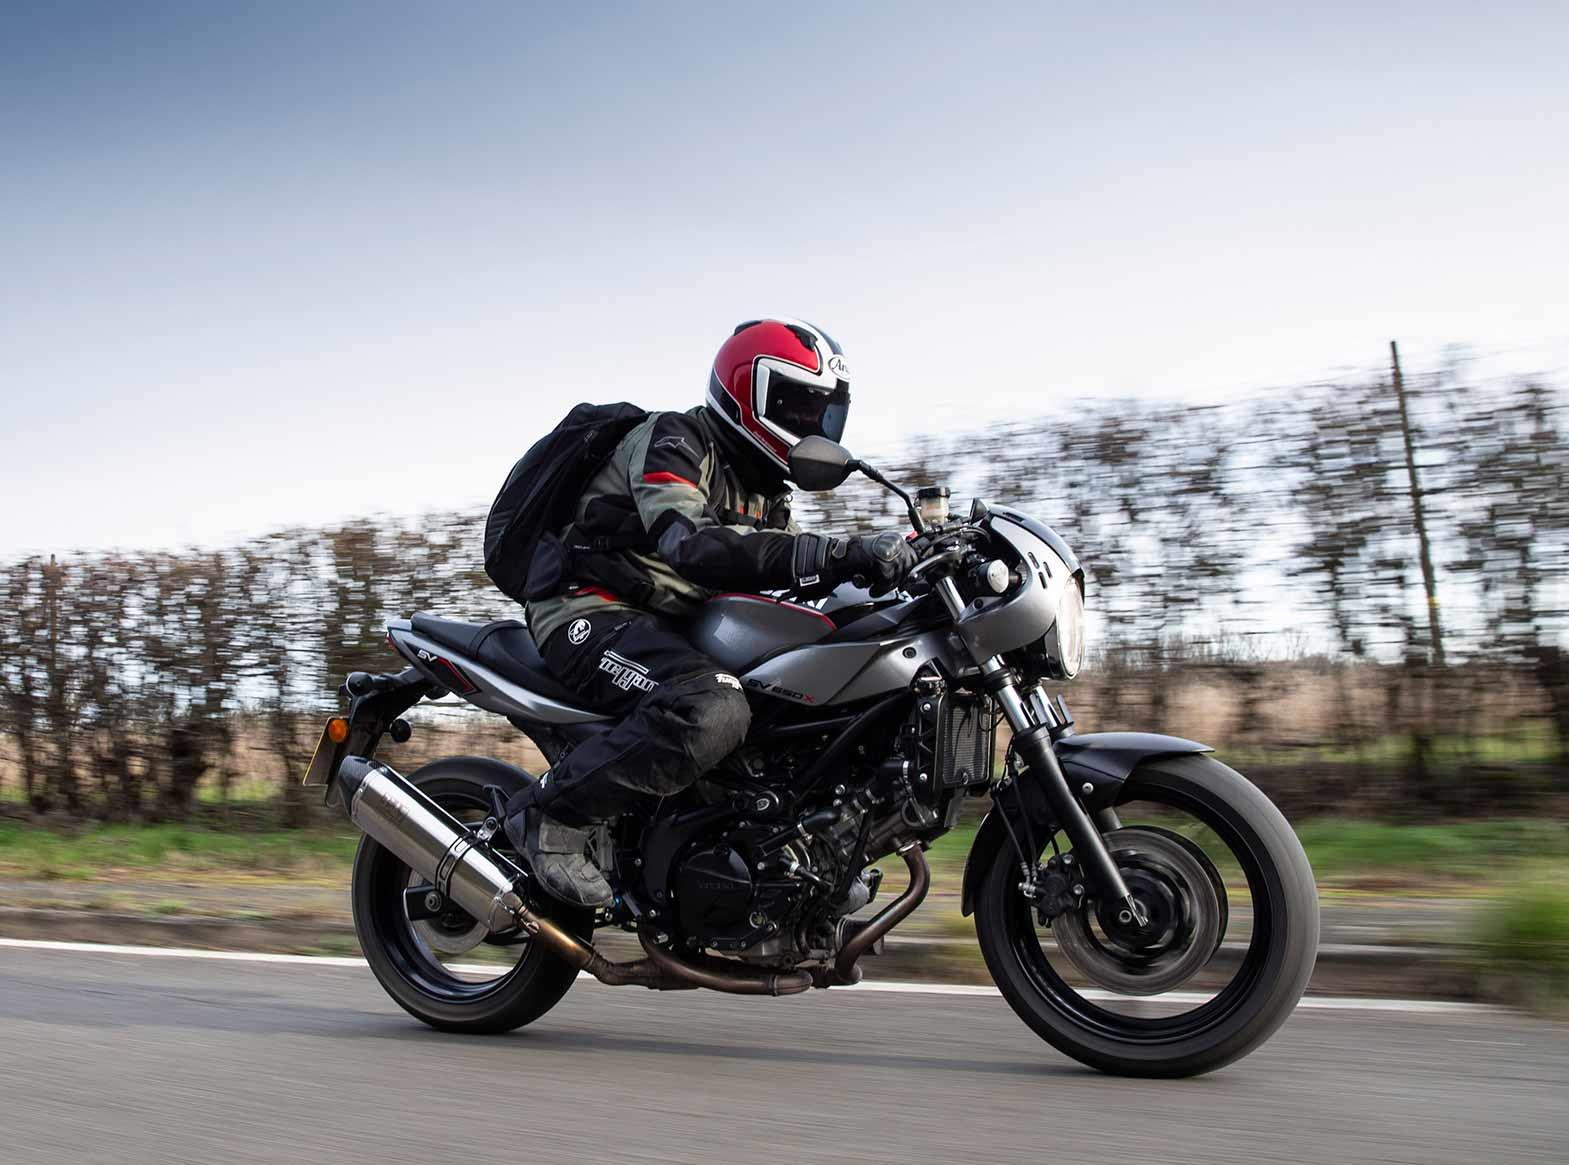 Riding on the Suzuki SV650X